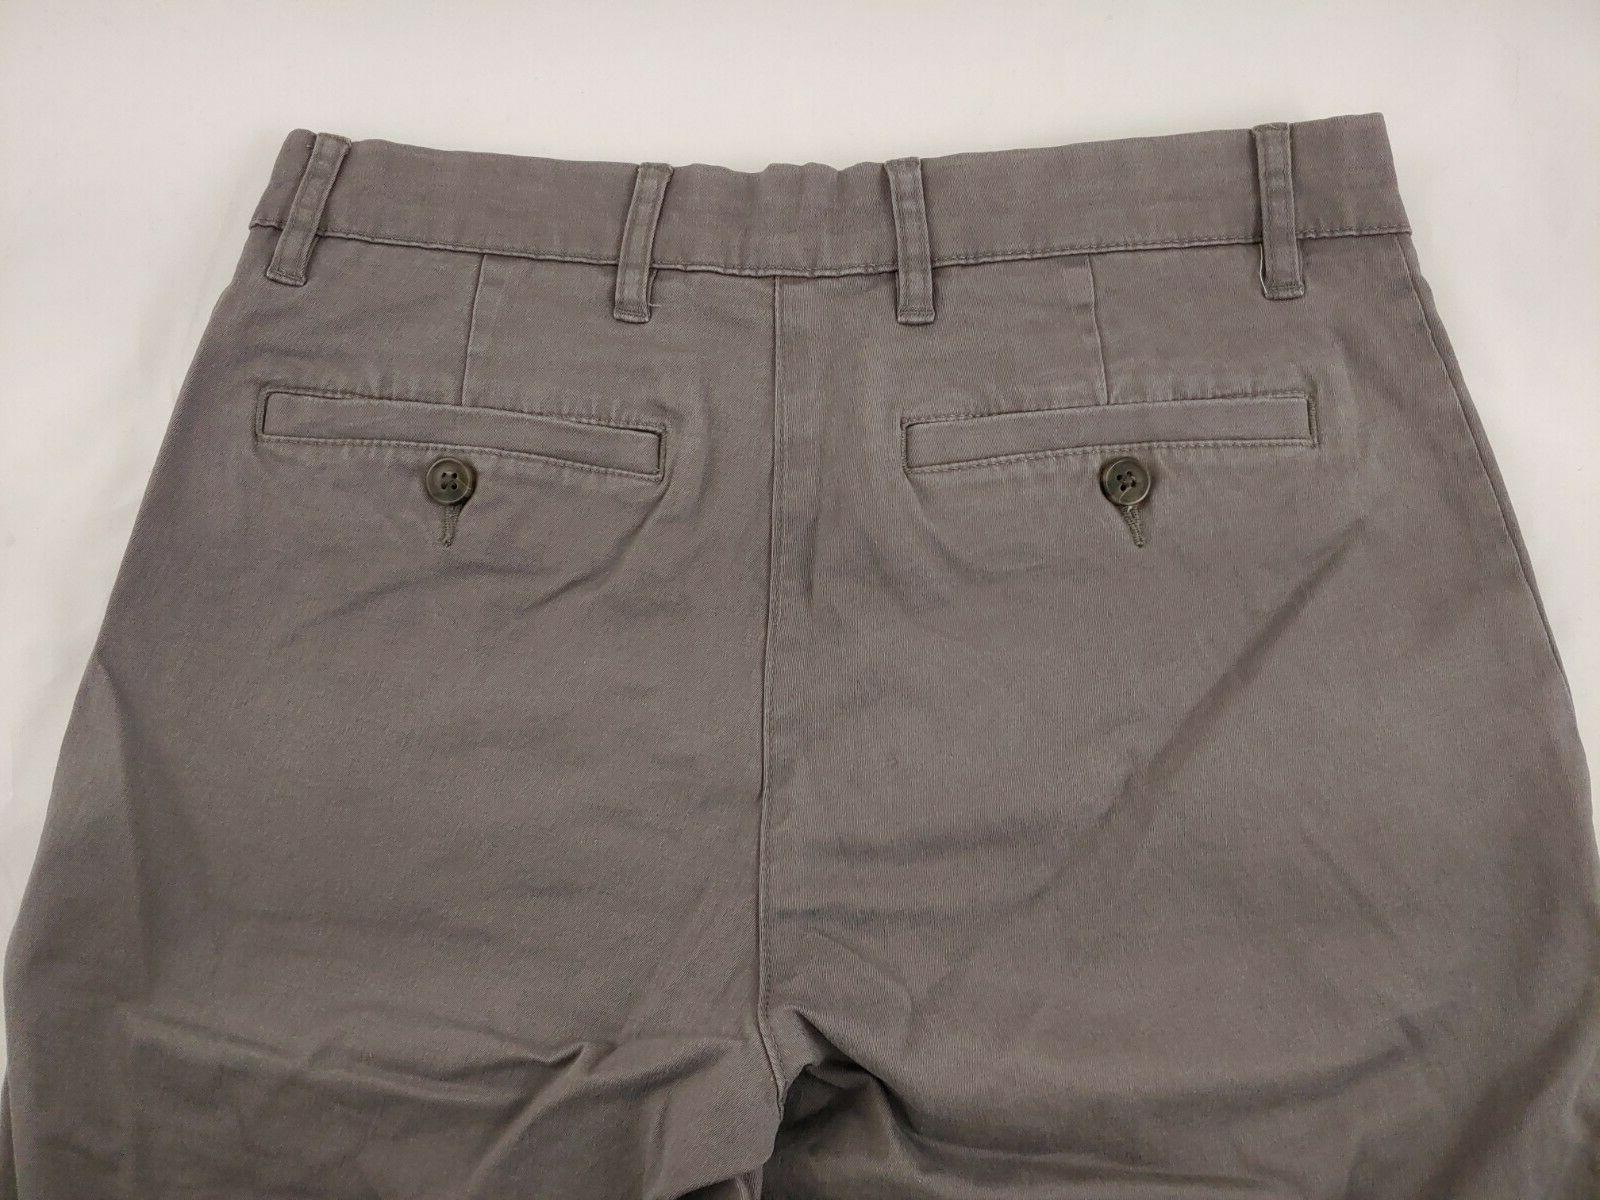 Goodthreads Pants Washed Gray Sz 28W